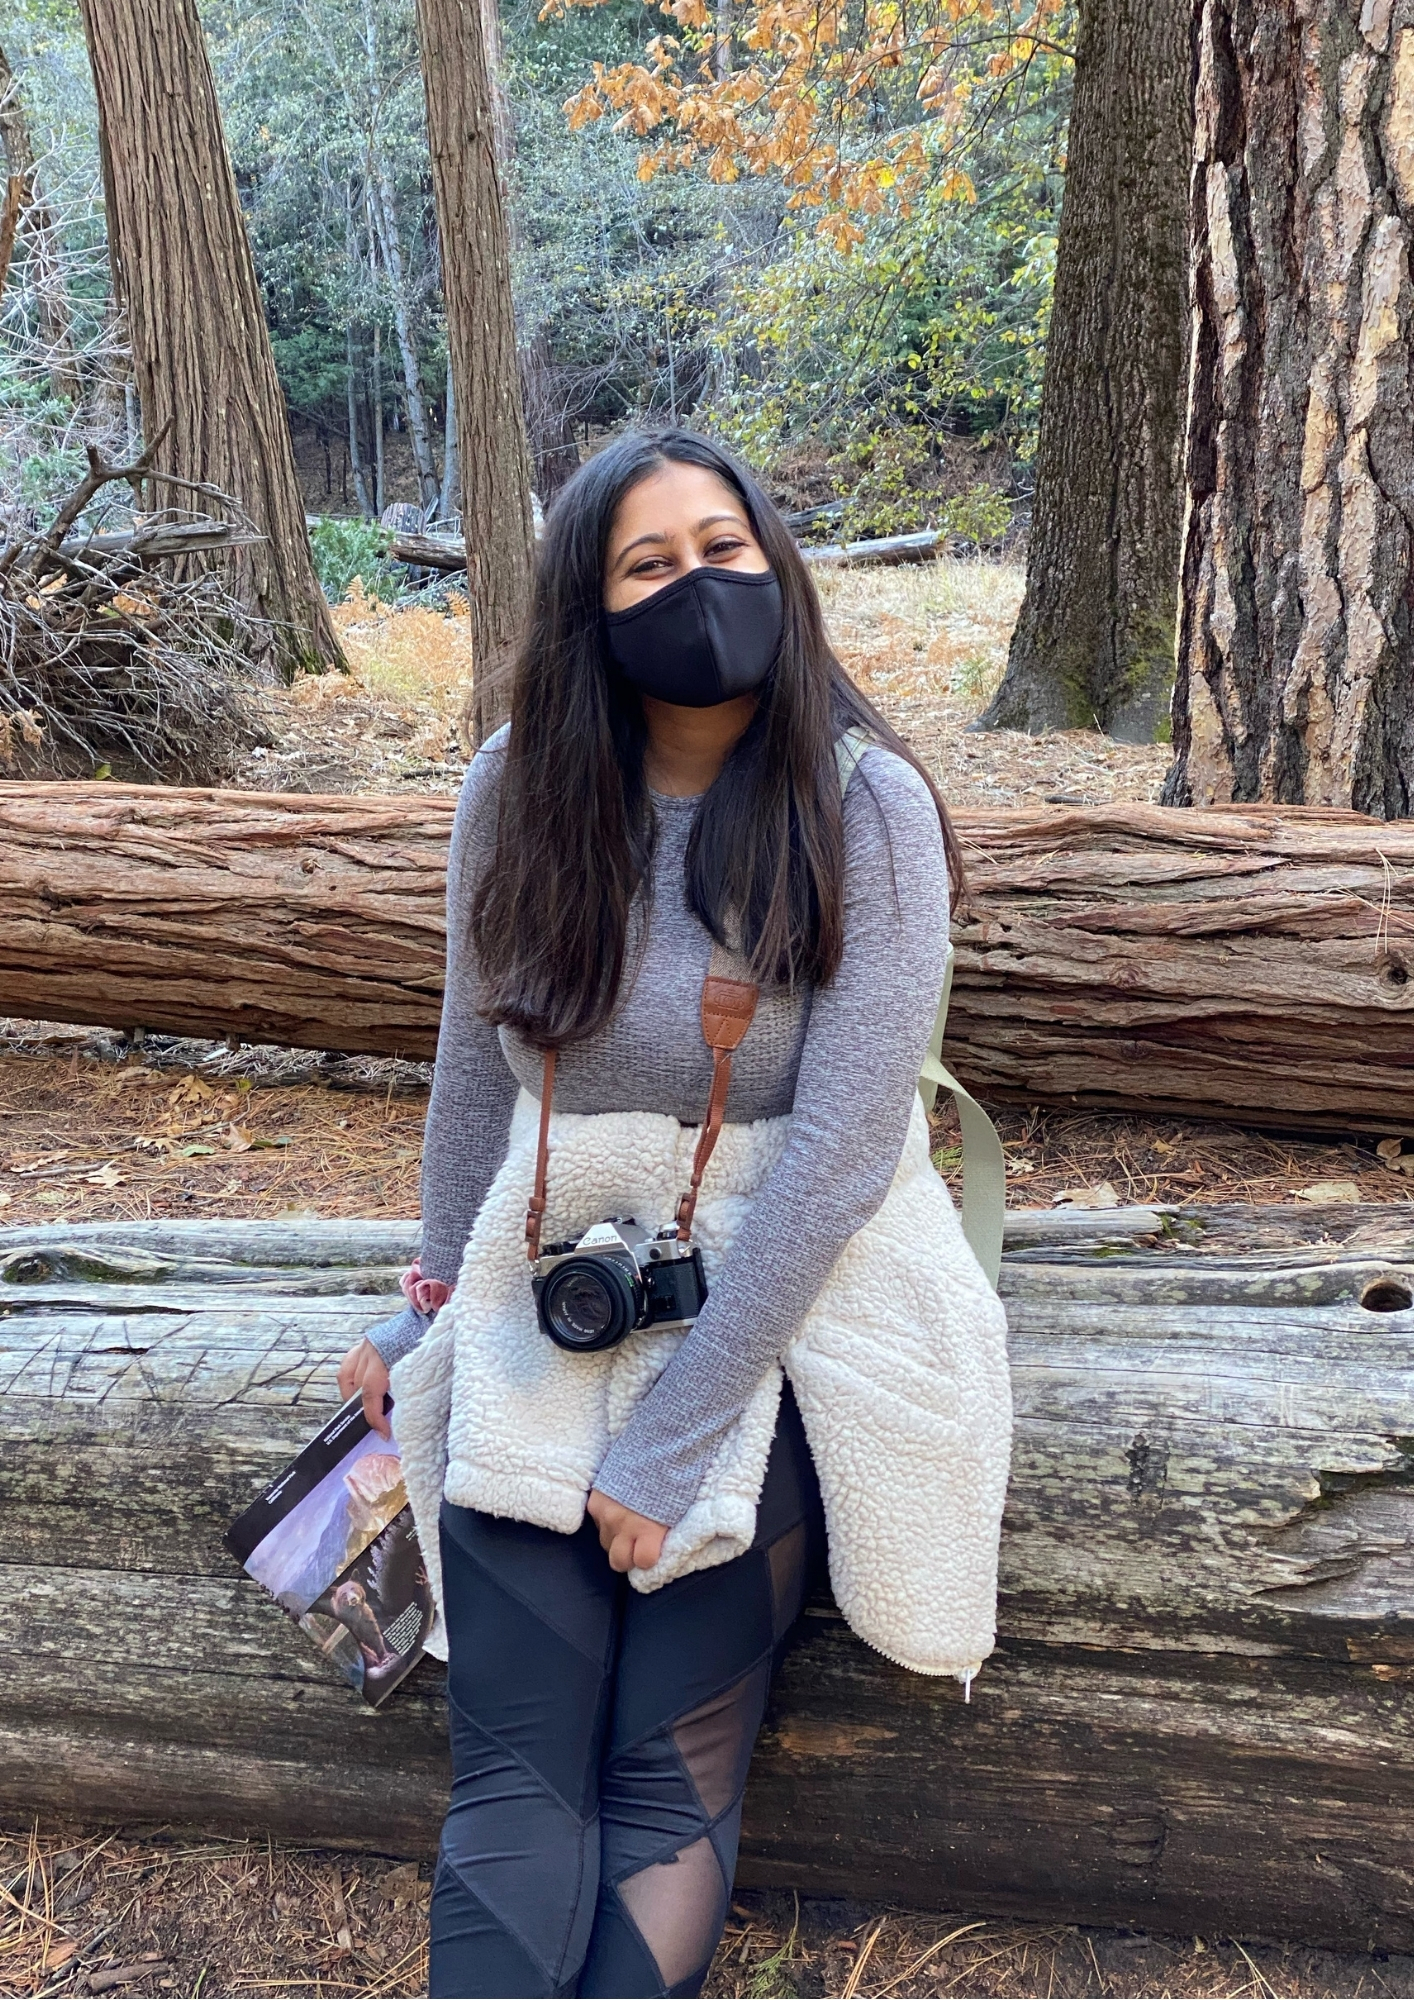 Celina wearing a mask in a park with her camera